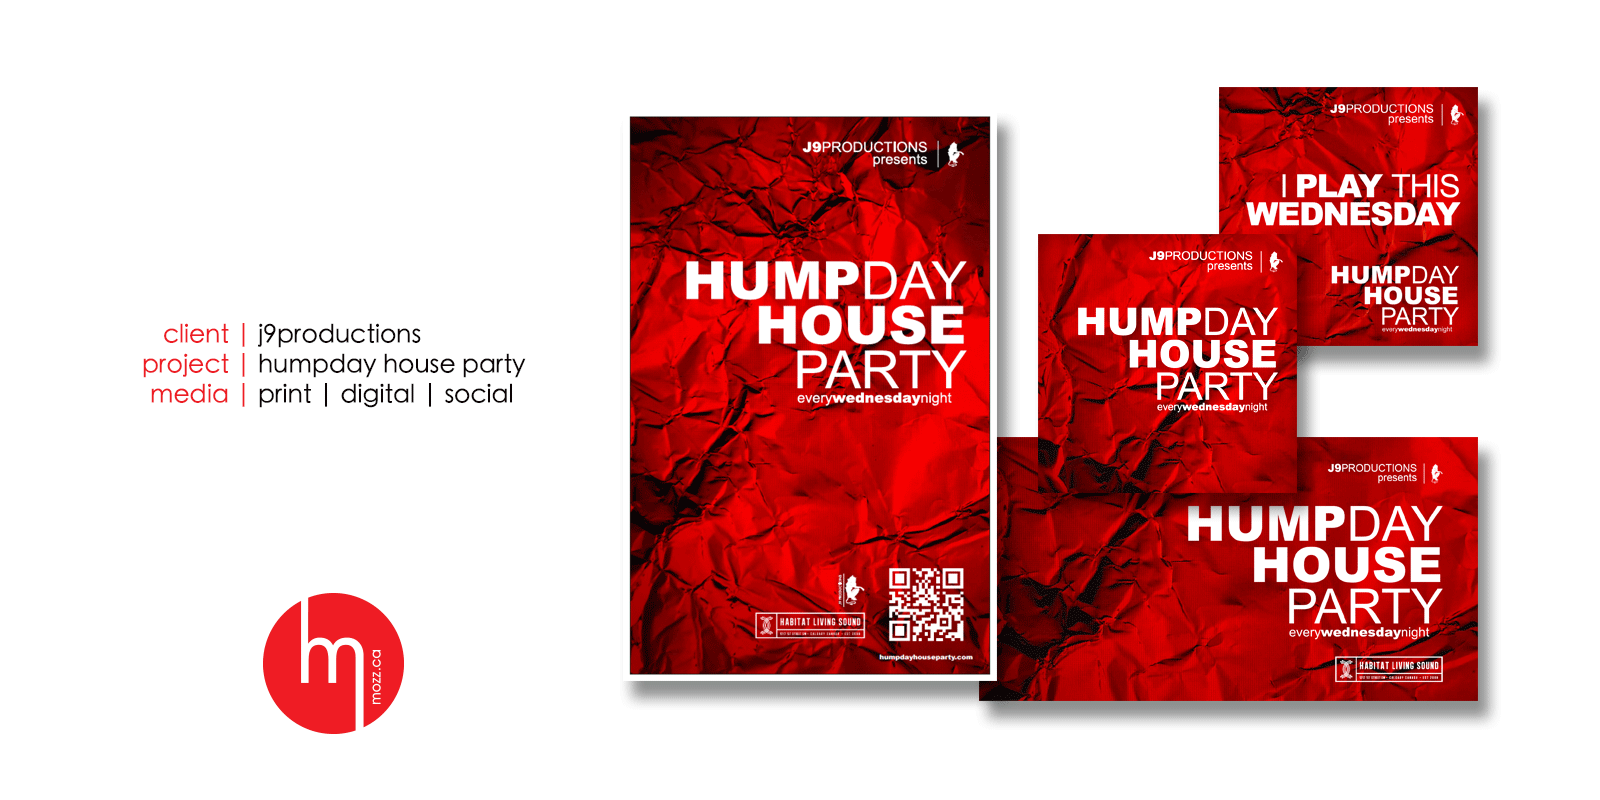 mozz.ca design sample for the humpday house party featuring digital social and print pieces